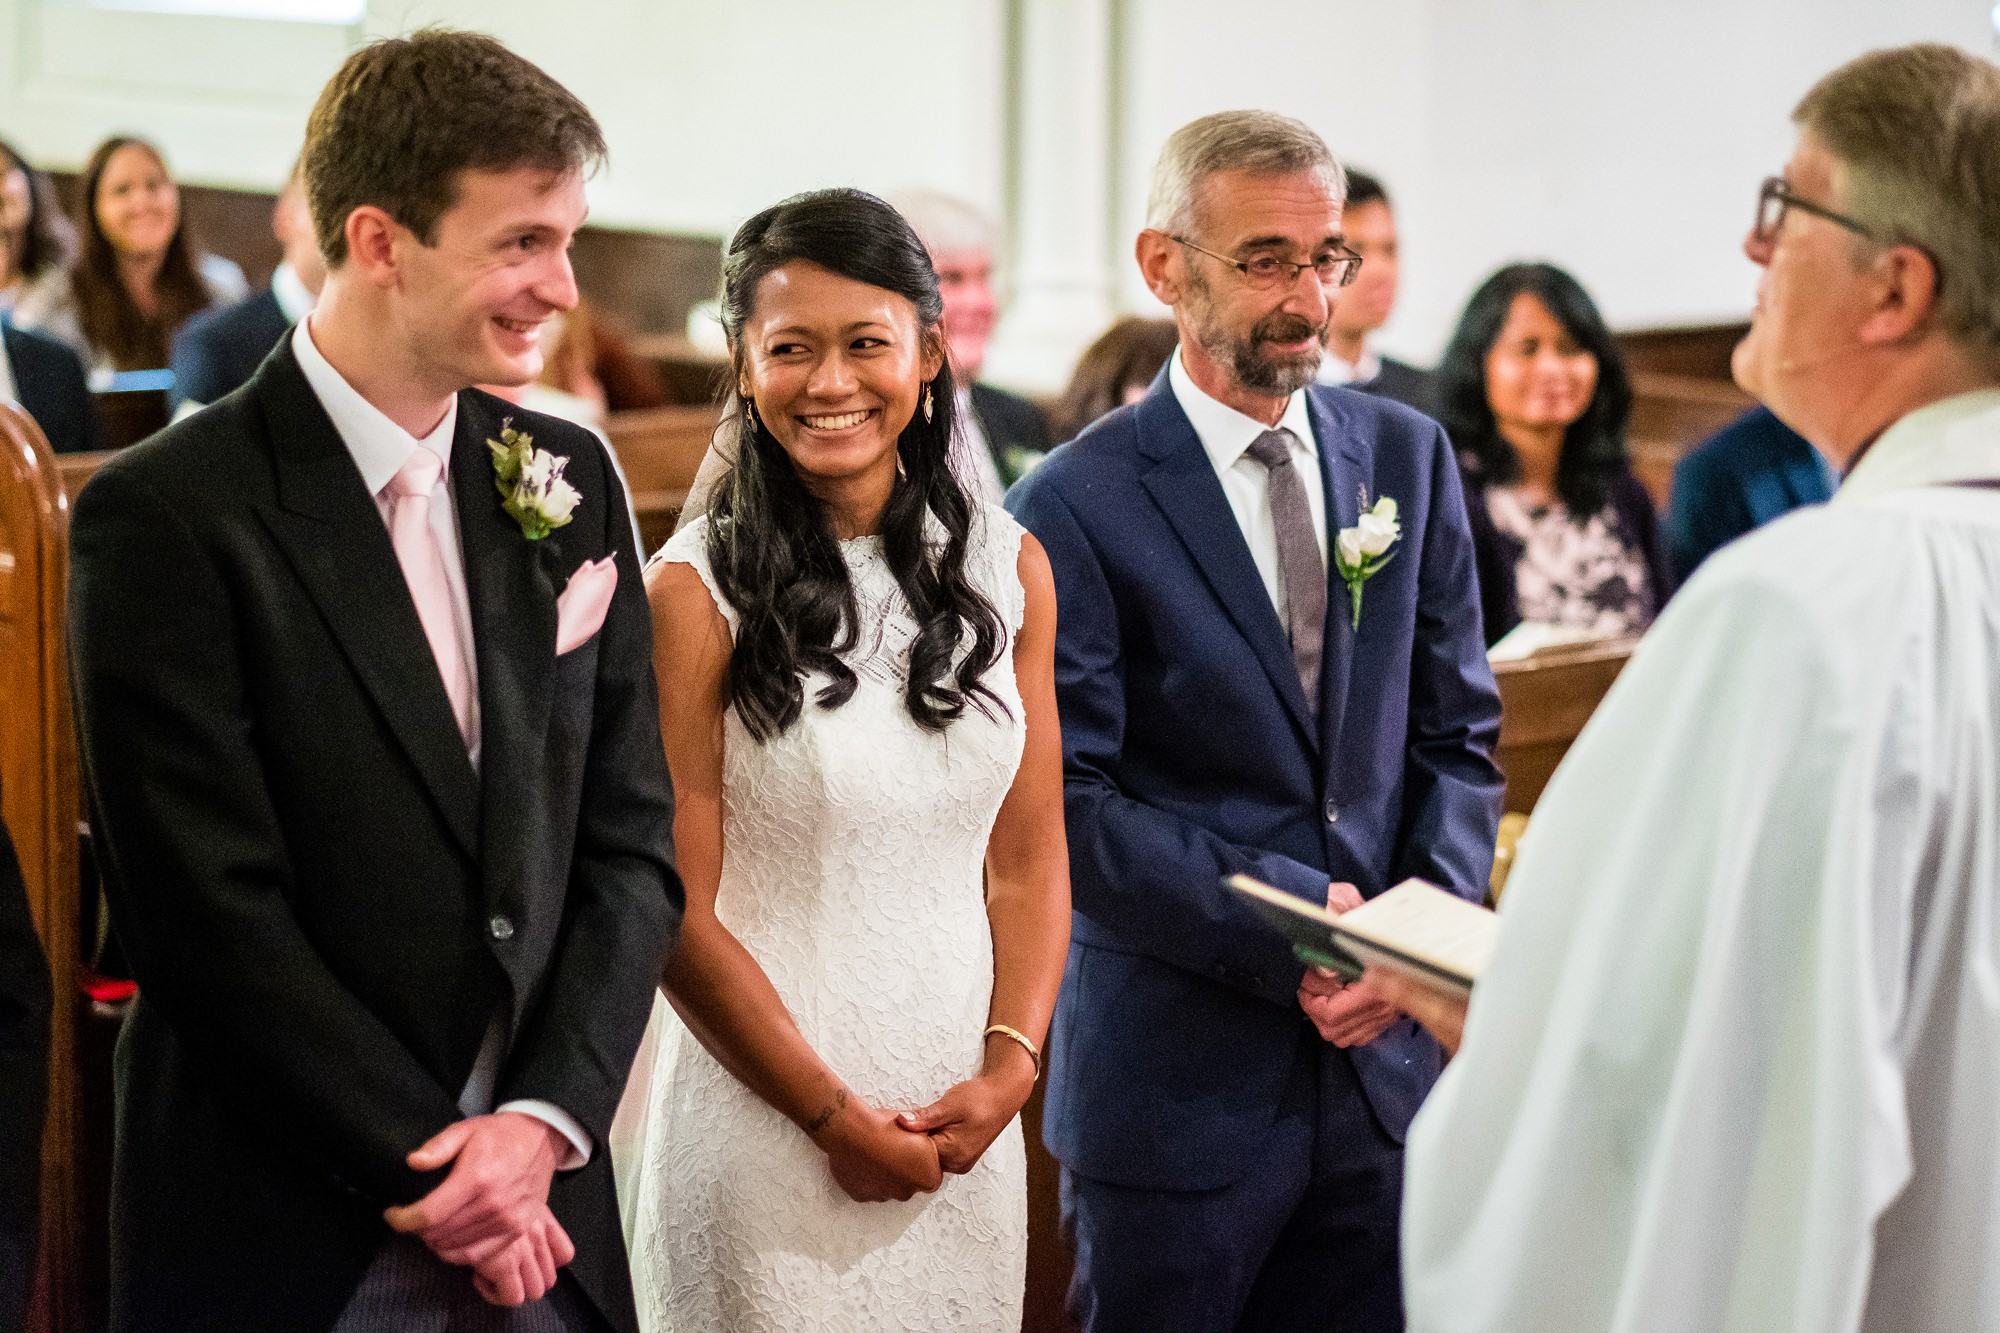 bride and groom during wedding service